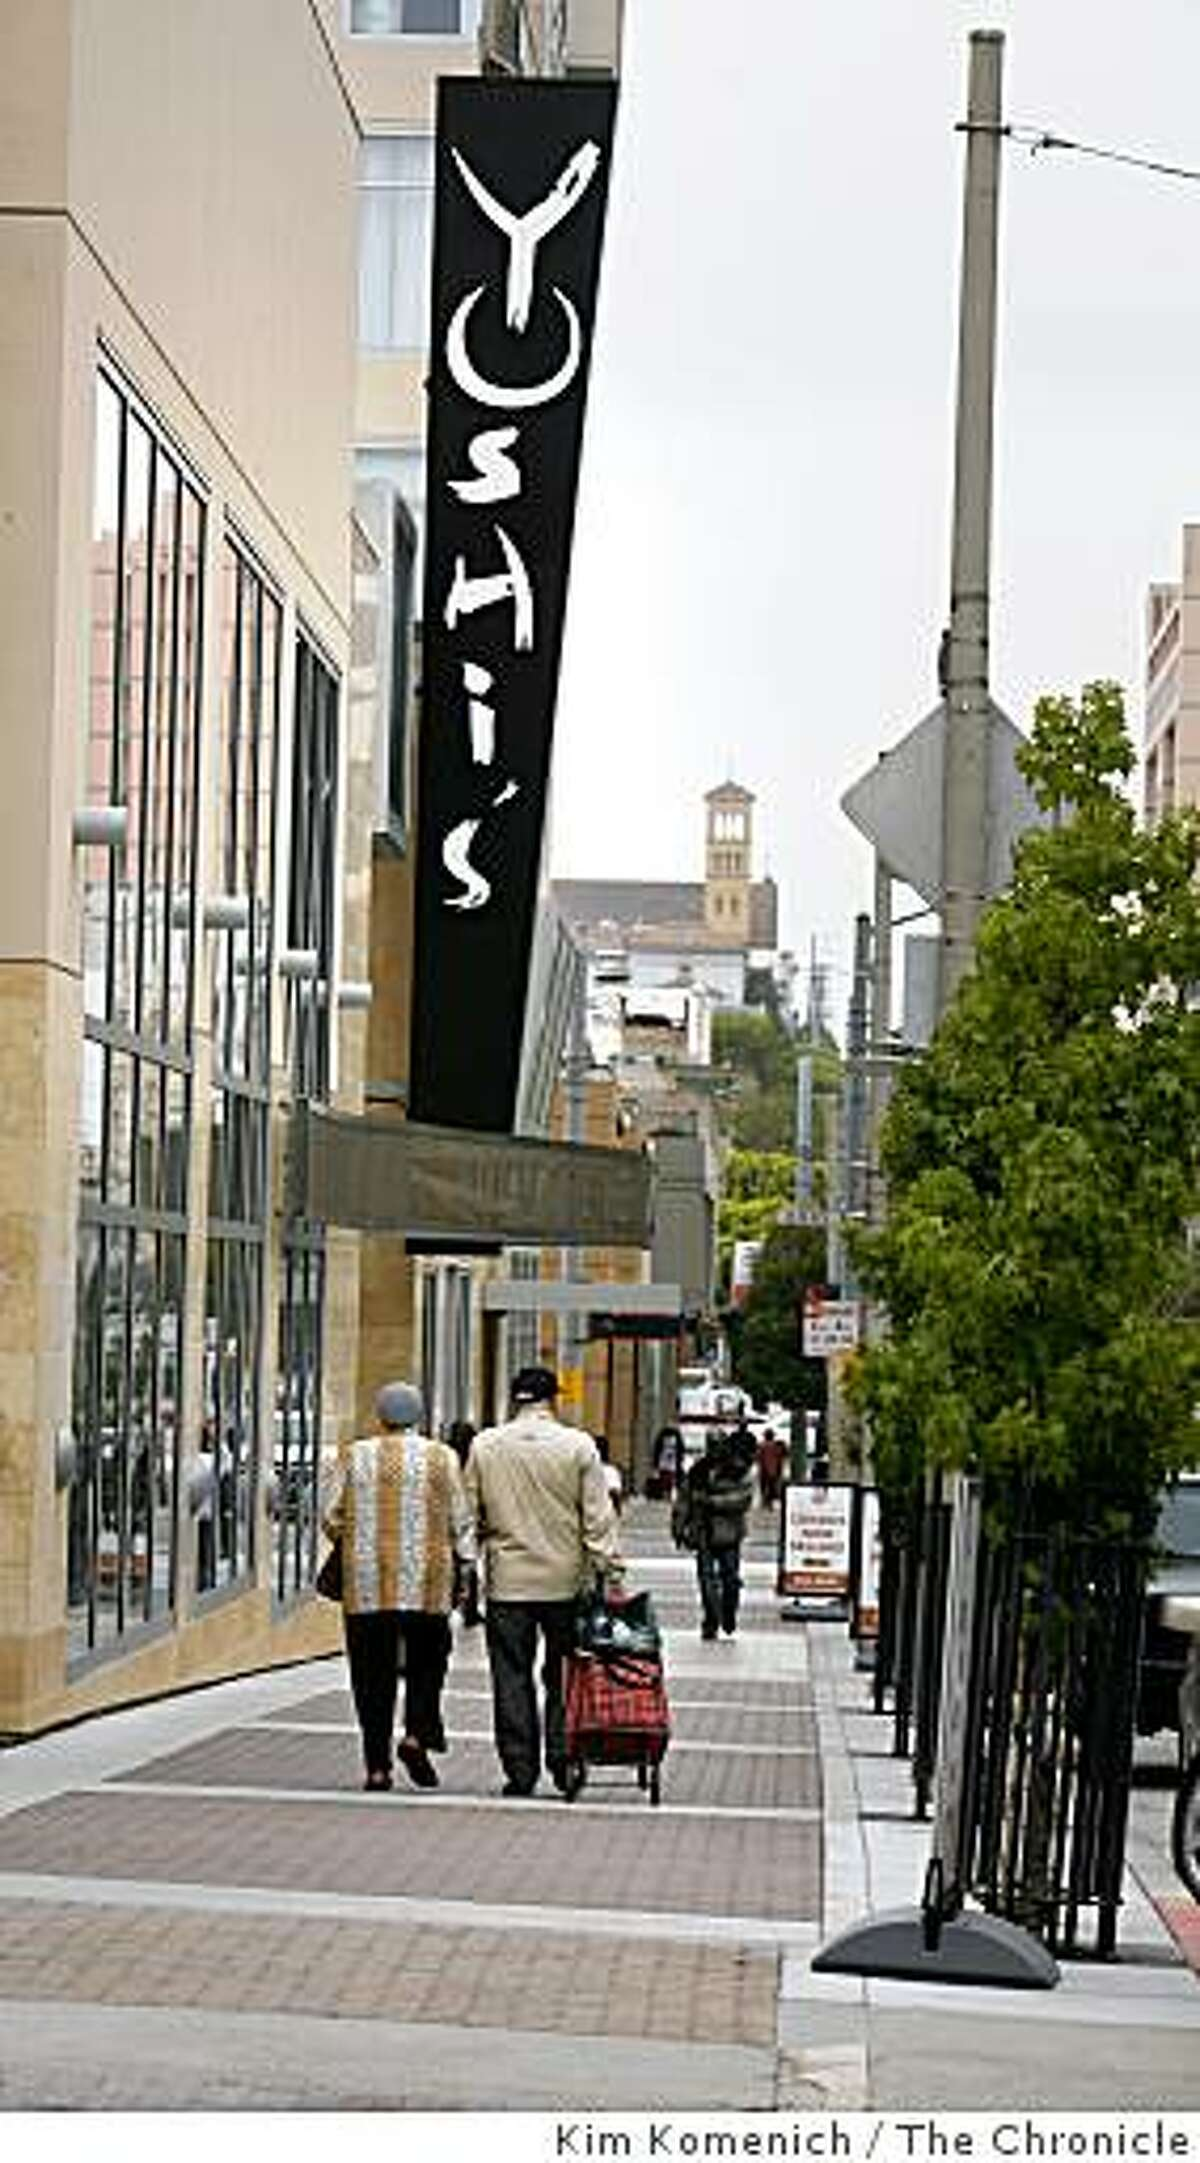 Pedestrians walk past the new Yoshi's Club on Fillmore Street in San Francsico, Calif., on Tuesday, July 15, 2008. San Francisco's Redevelopment Agency is set to leave the Western Addition in January, ending a 40-year urban renewal project that was touted as a move to wipe out blight. In the process the project dispersed San Francisco's largest thriving black community.